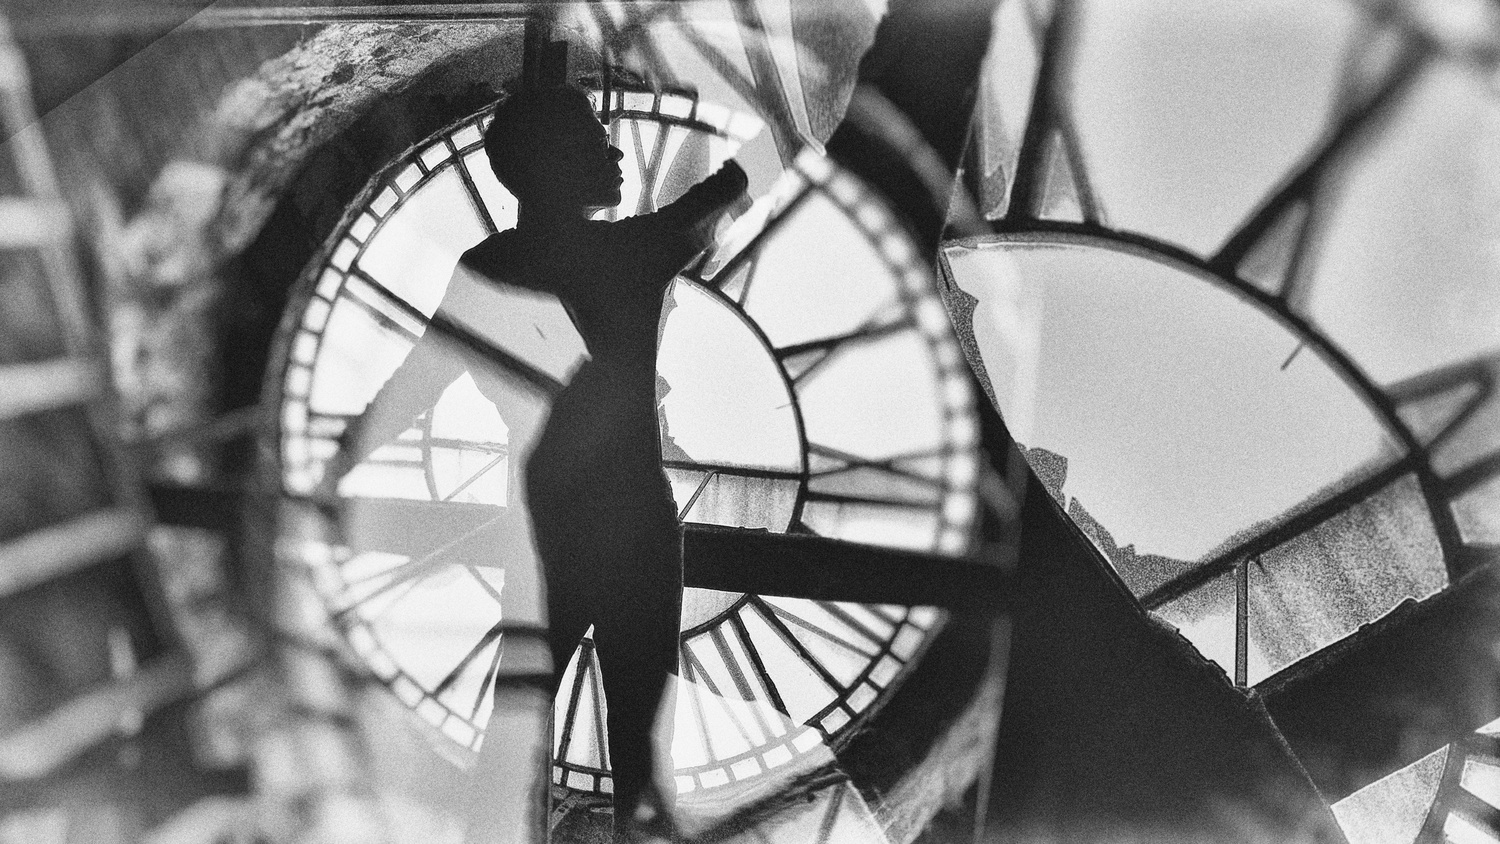 Double-Exposed Time by Carl Viktor